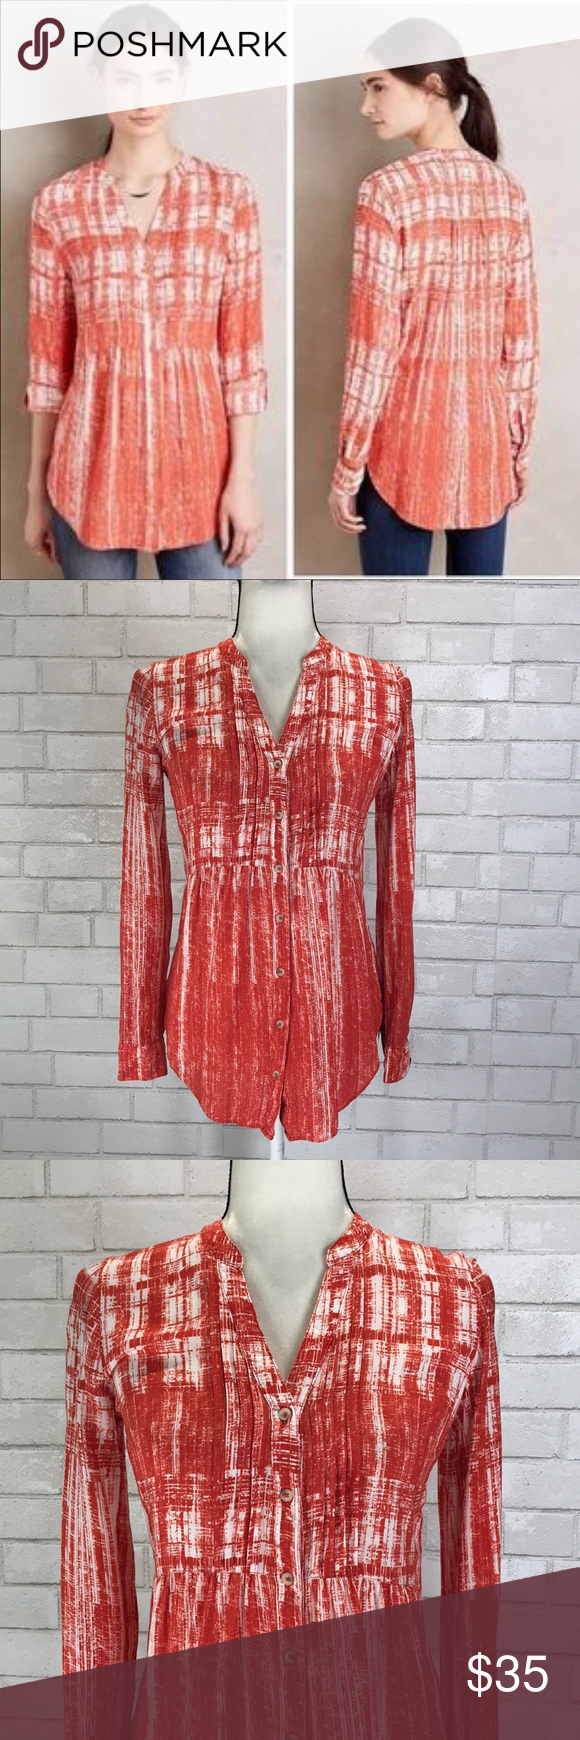 24f6b791ea000 Anthro Maeve Calia Pintuck Button Down Blouse EUC This is a Maeve for  Anthropologie Calia Blouse